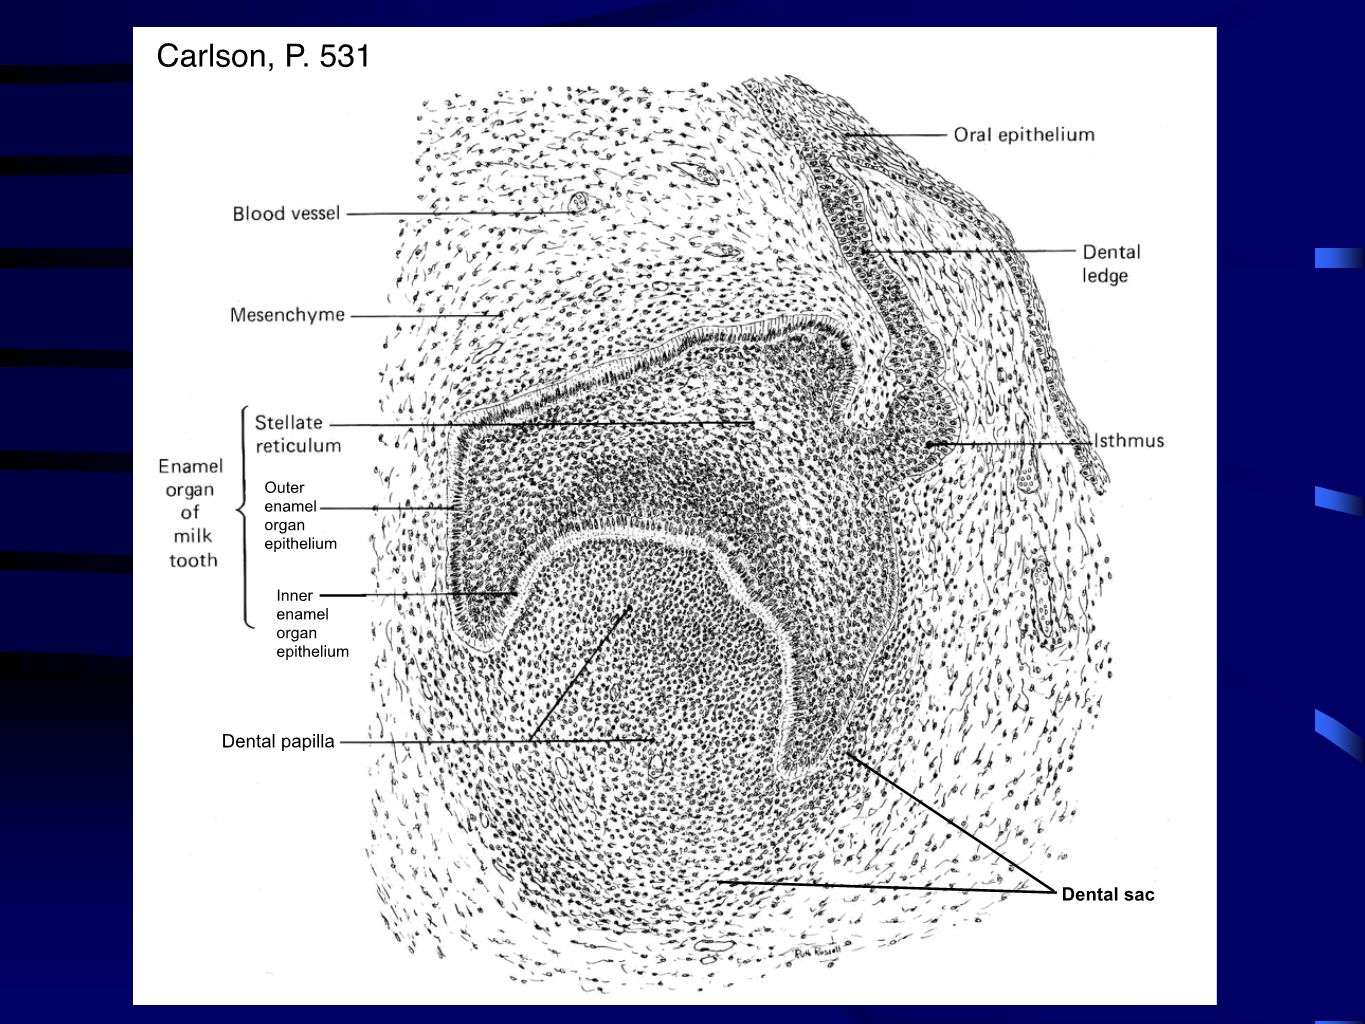 P. 531, Fig. 16-15, Carlson Dental papilla